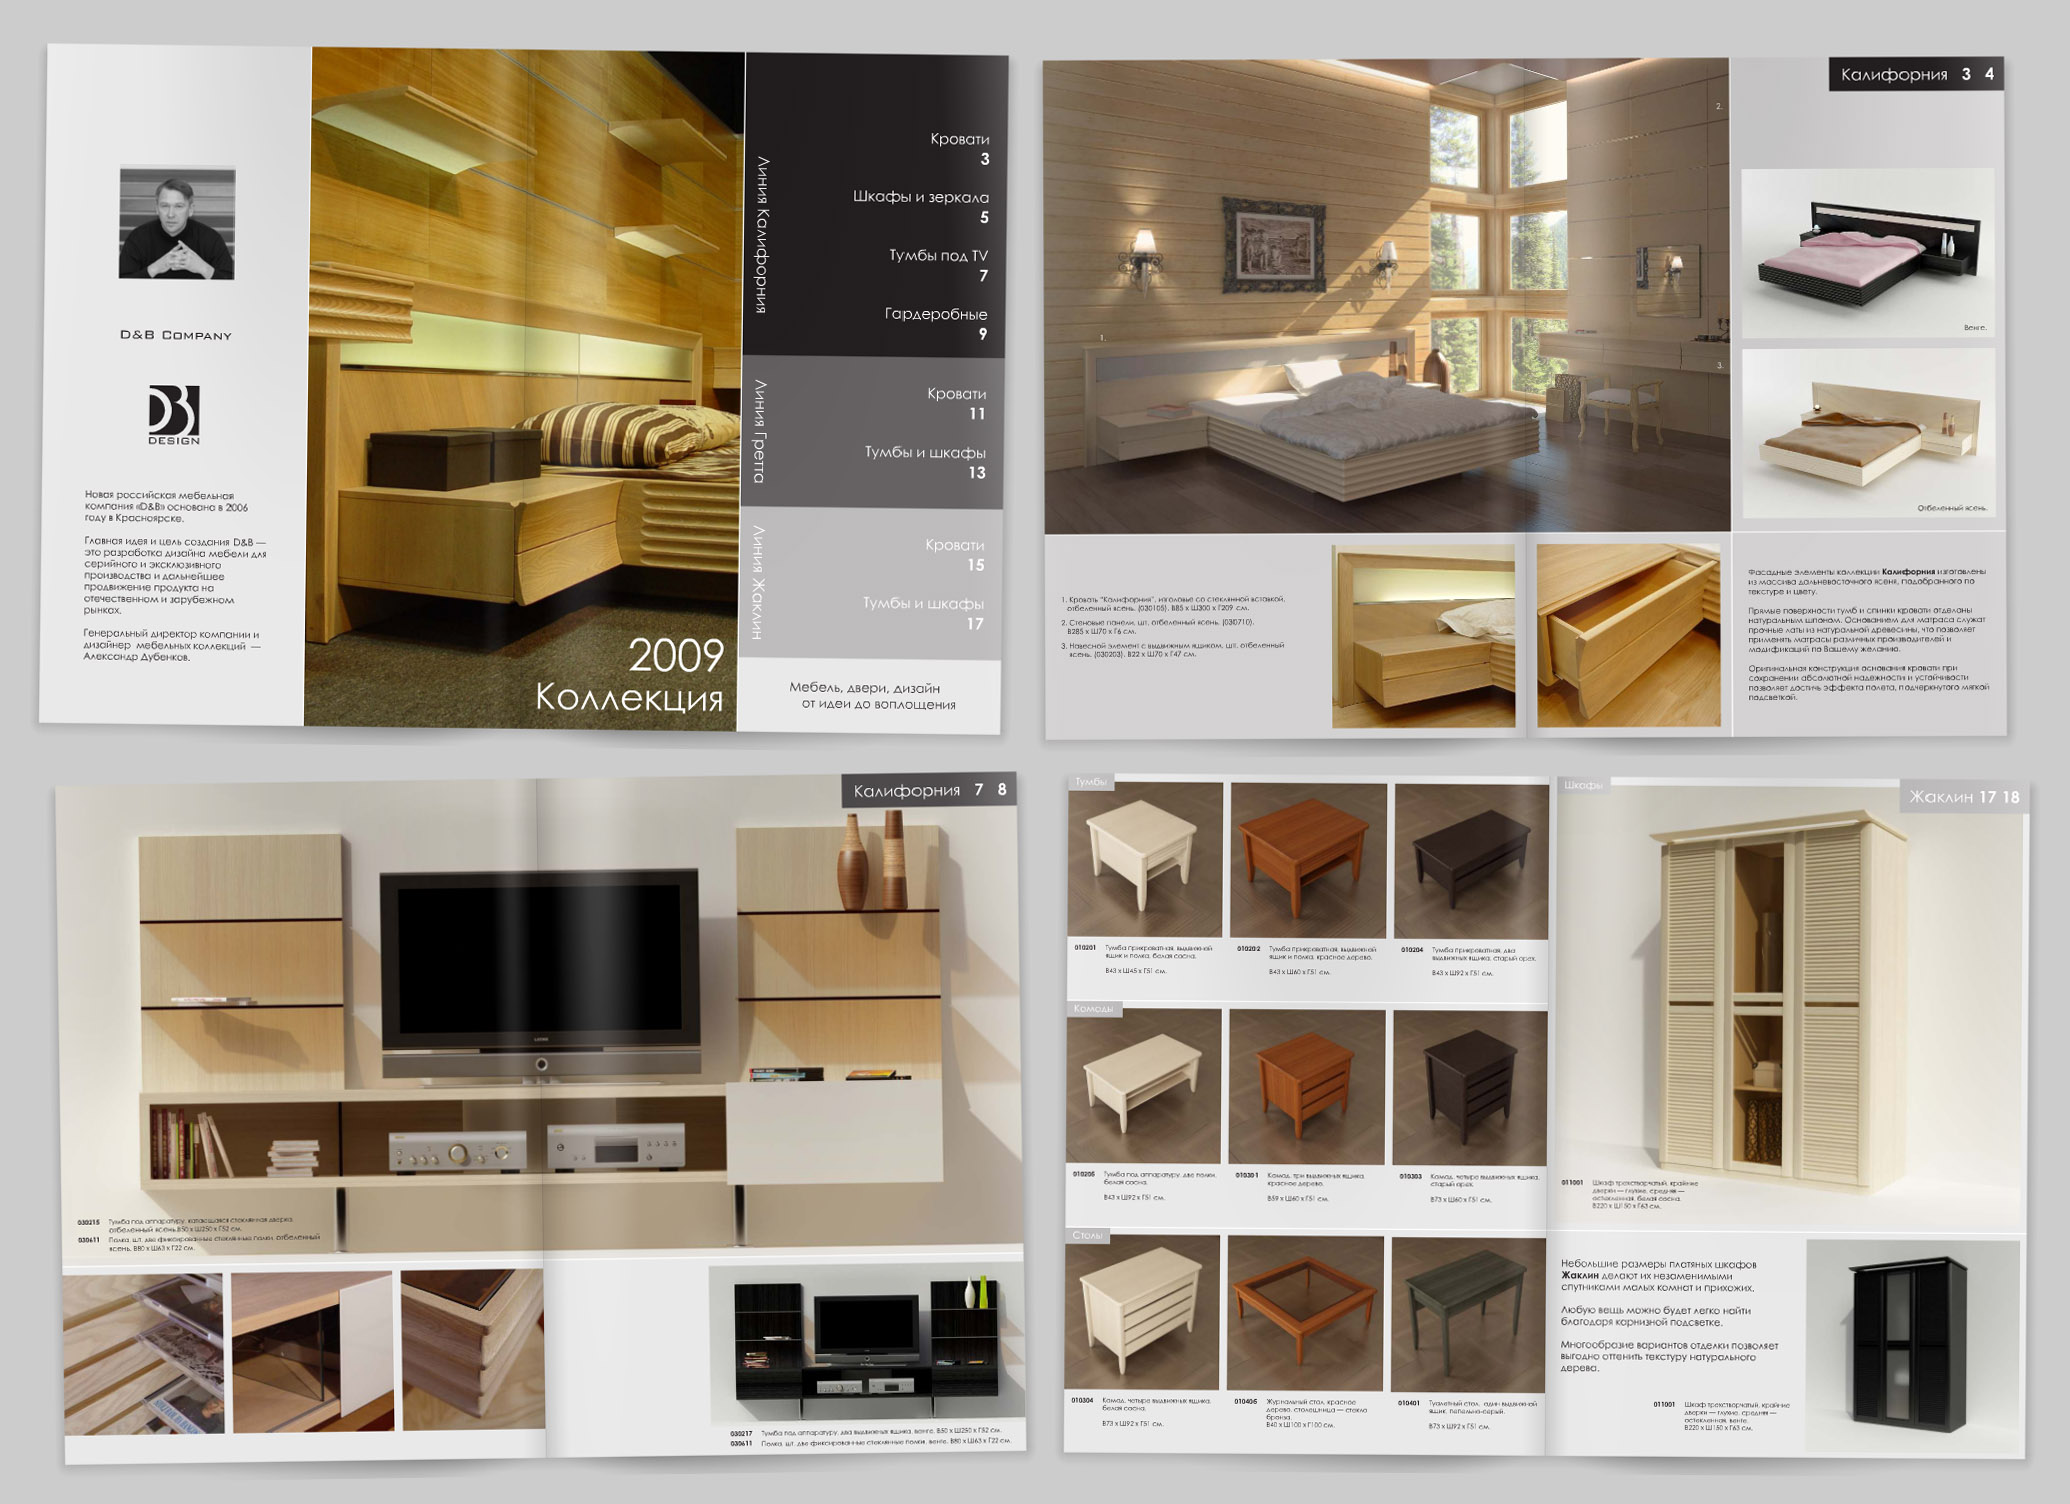 Home Interior Design Catalog Graphic Design By Yury Sysoev At Coroflot